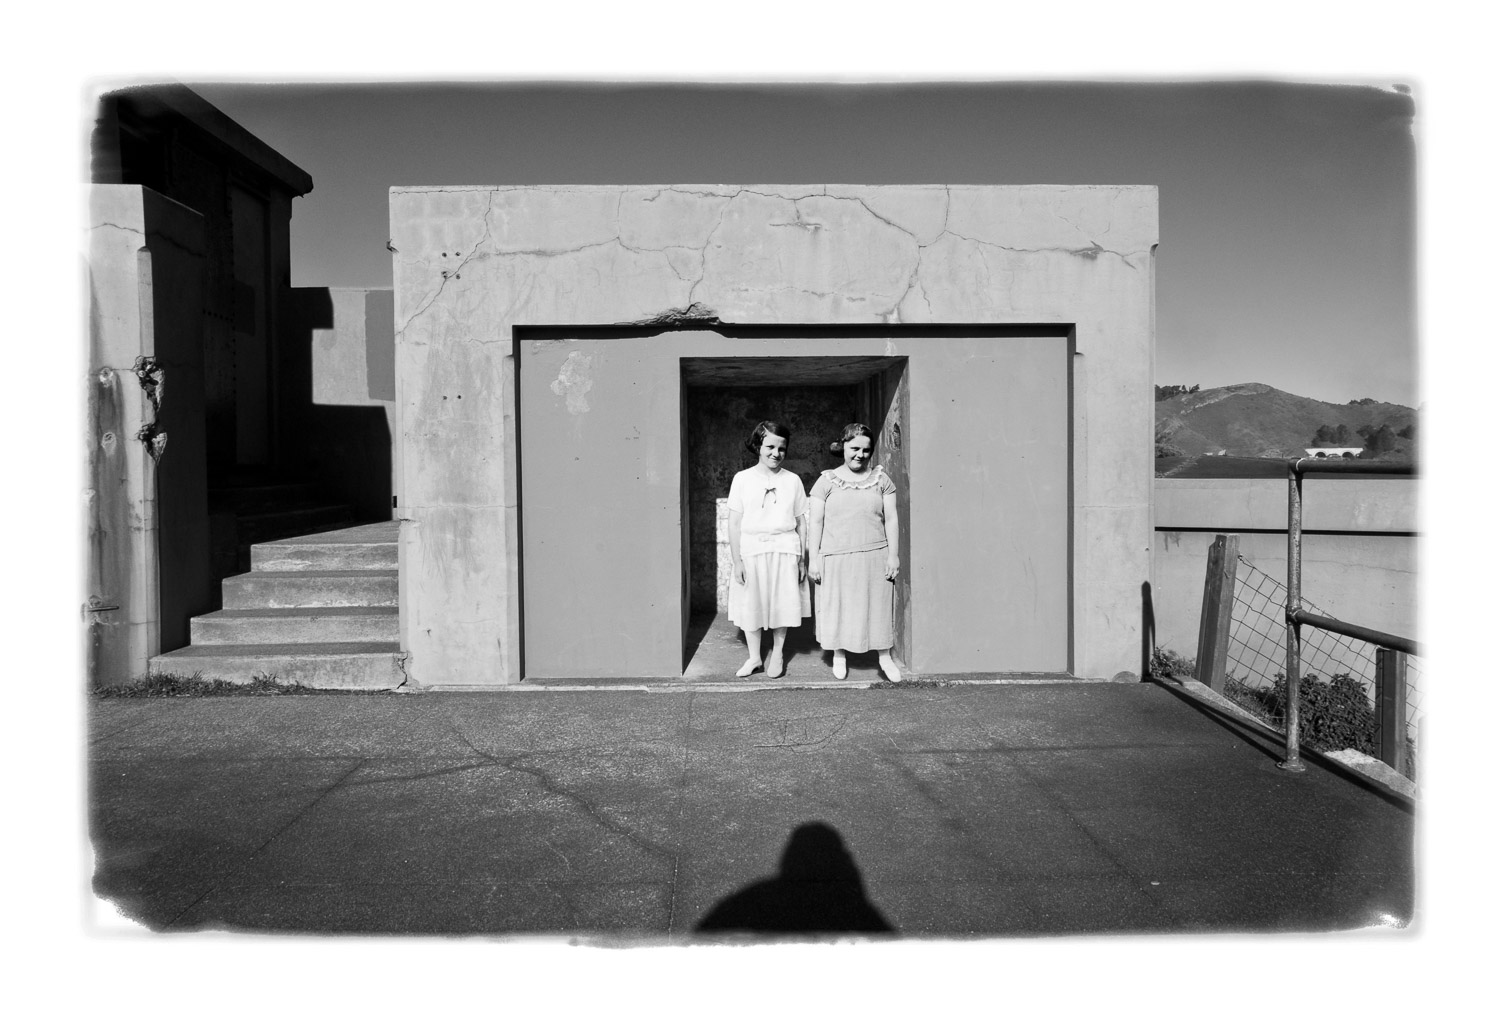 #29 from the series, Desolation's Comfort | Mark Lindsay